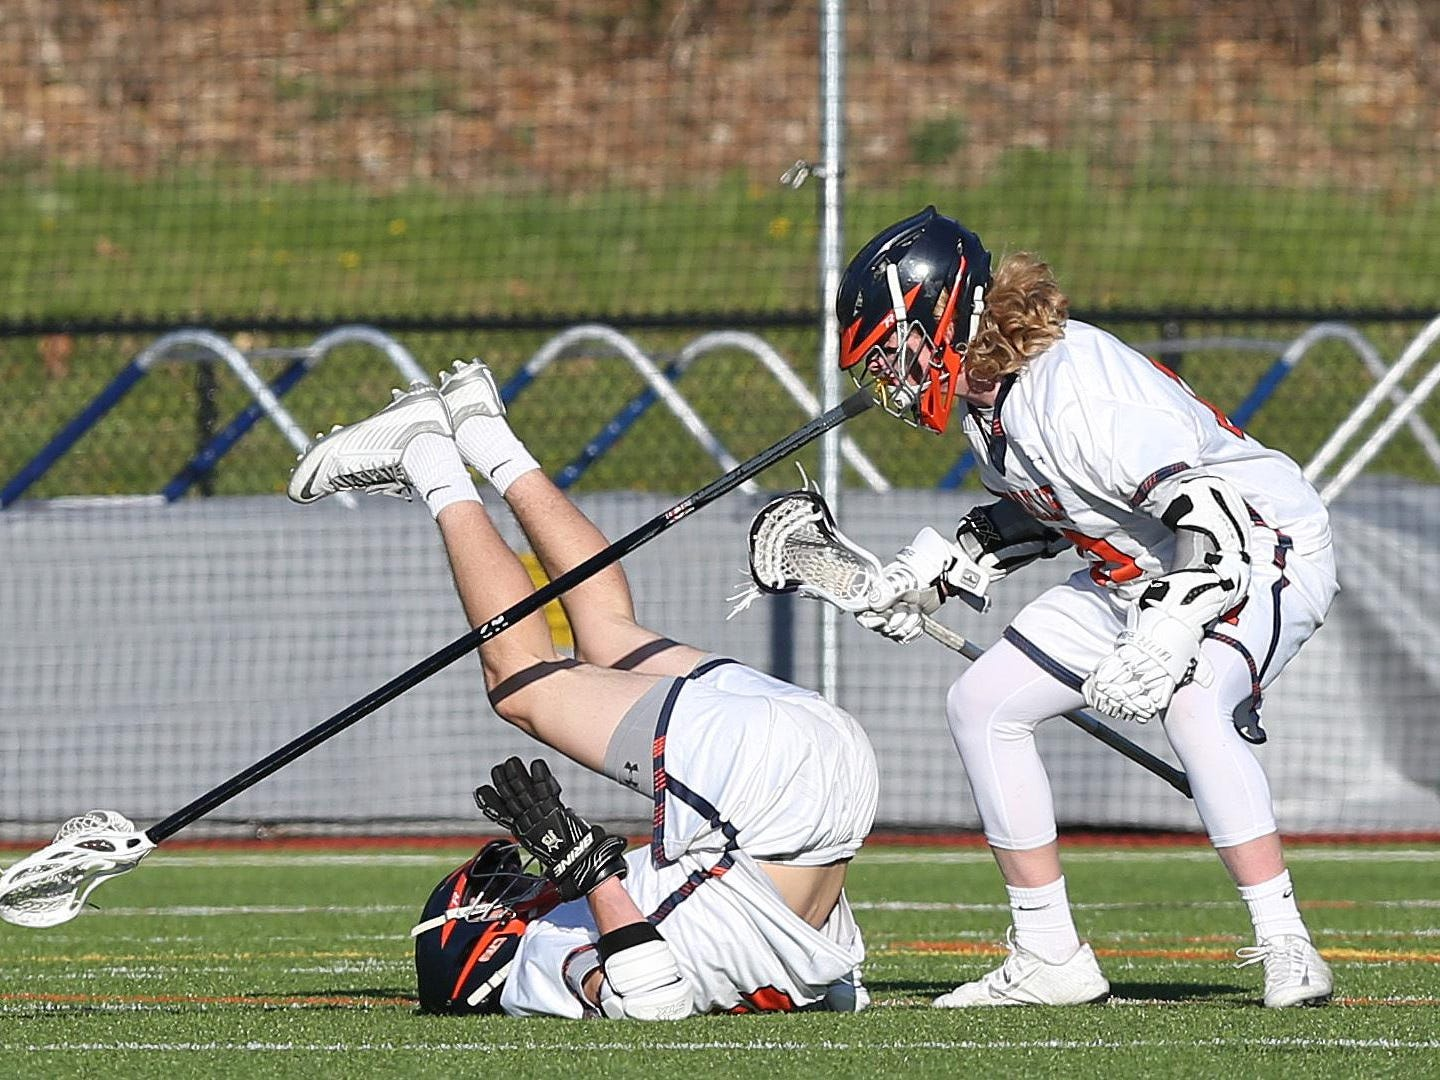 From left, Briracliff's Michael DeGasperis (2) falls backwards in front of teammate Peter Olson (17) as he releases a shot that ended up being the game winning goal in the 4th quarter against Pleasantville during a lacrosse game at Briarcliff High School April 20, 2016. Briarcliff won the game 8-7.